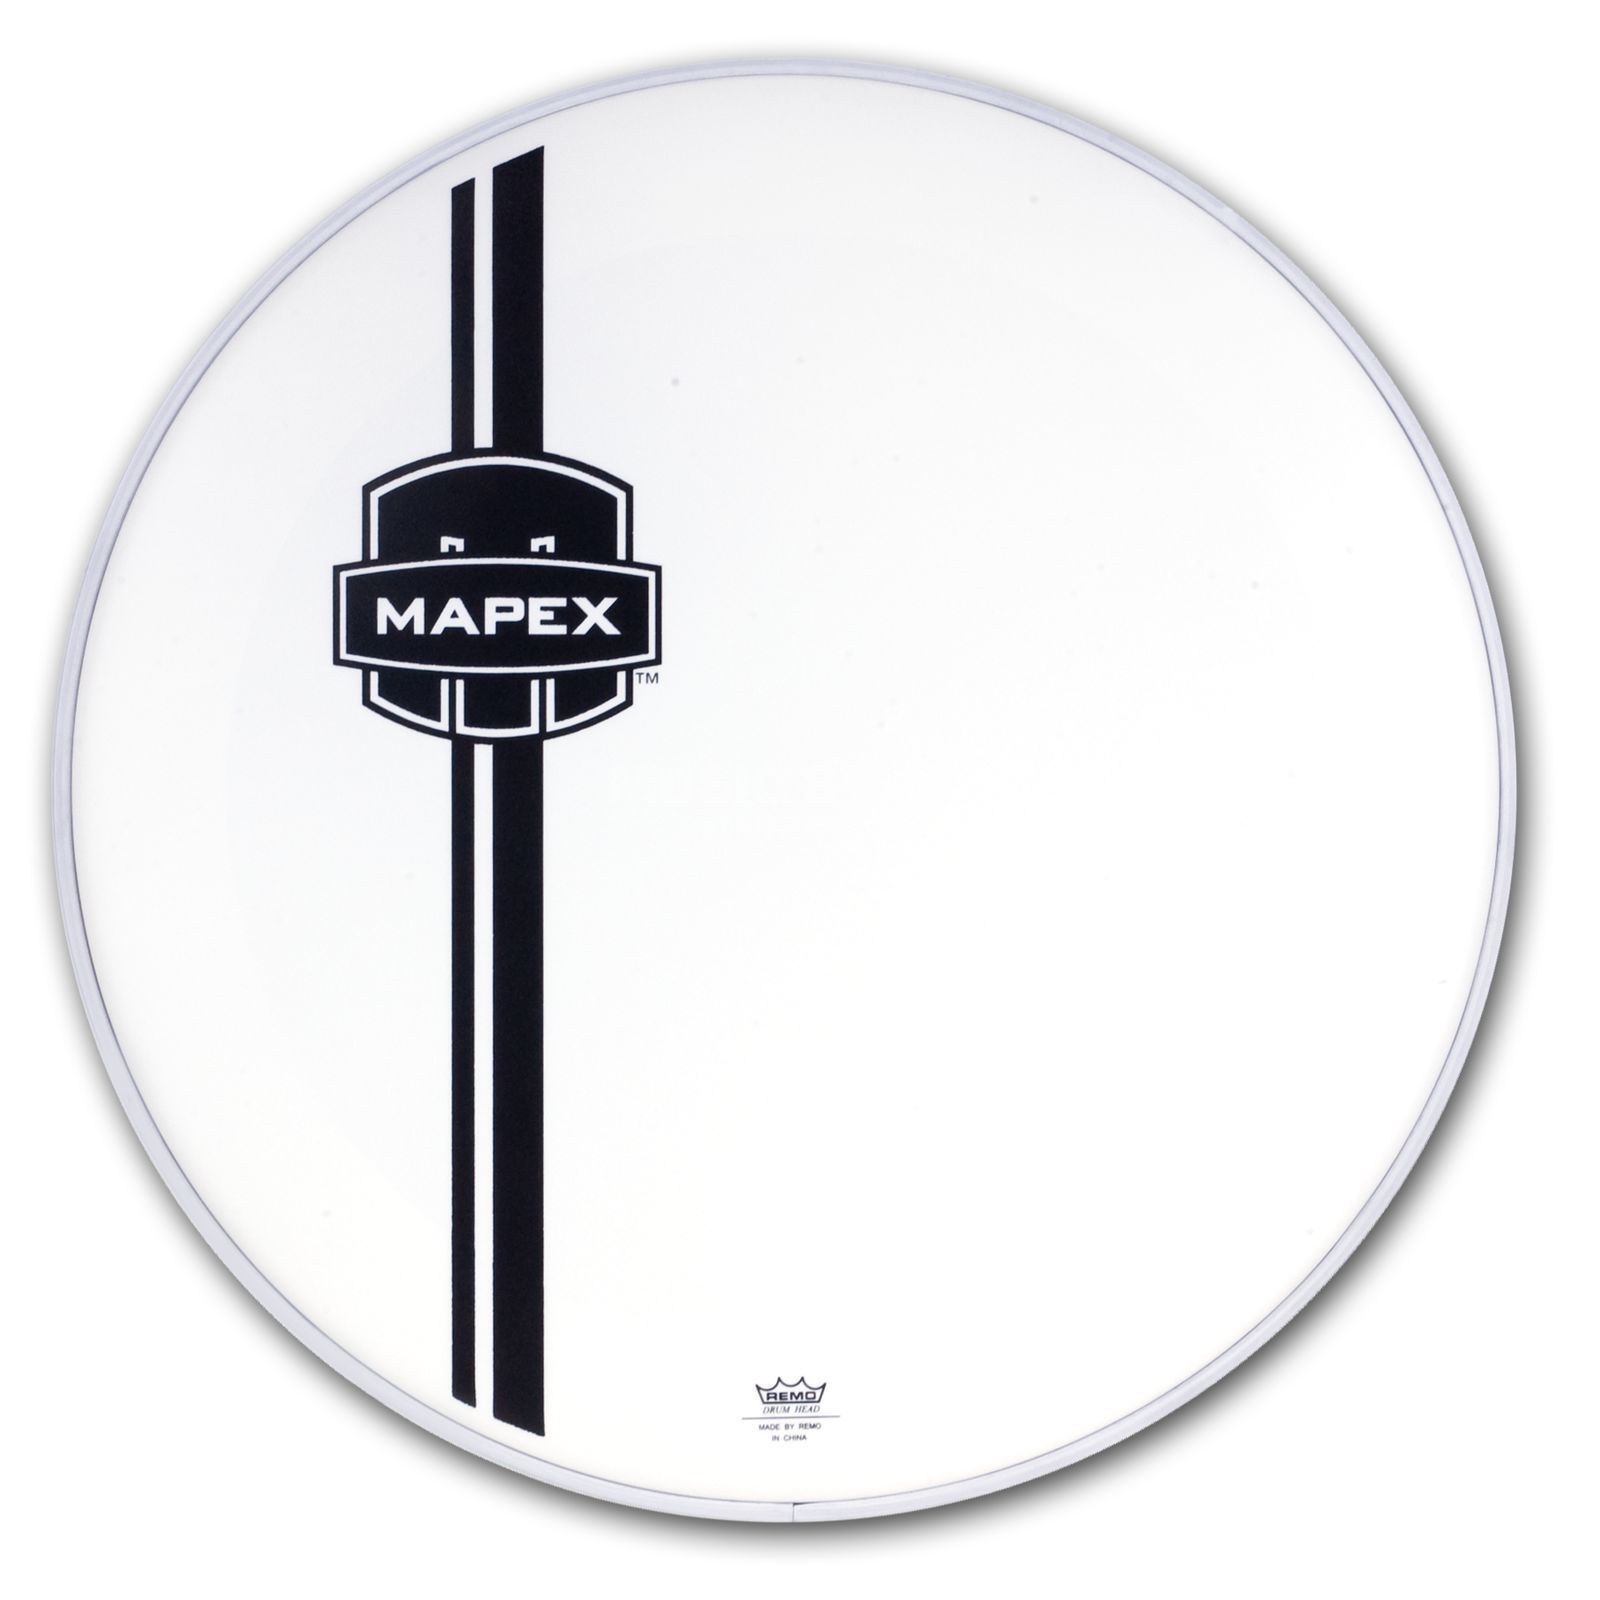 "Mapex Bass Drum Front Head 18"", white, black Logo Product Image"